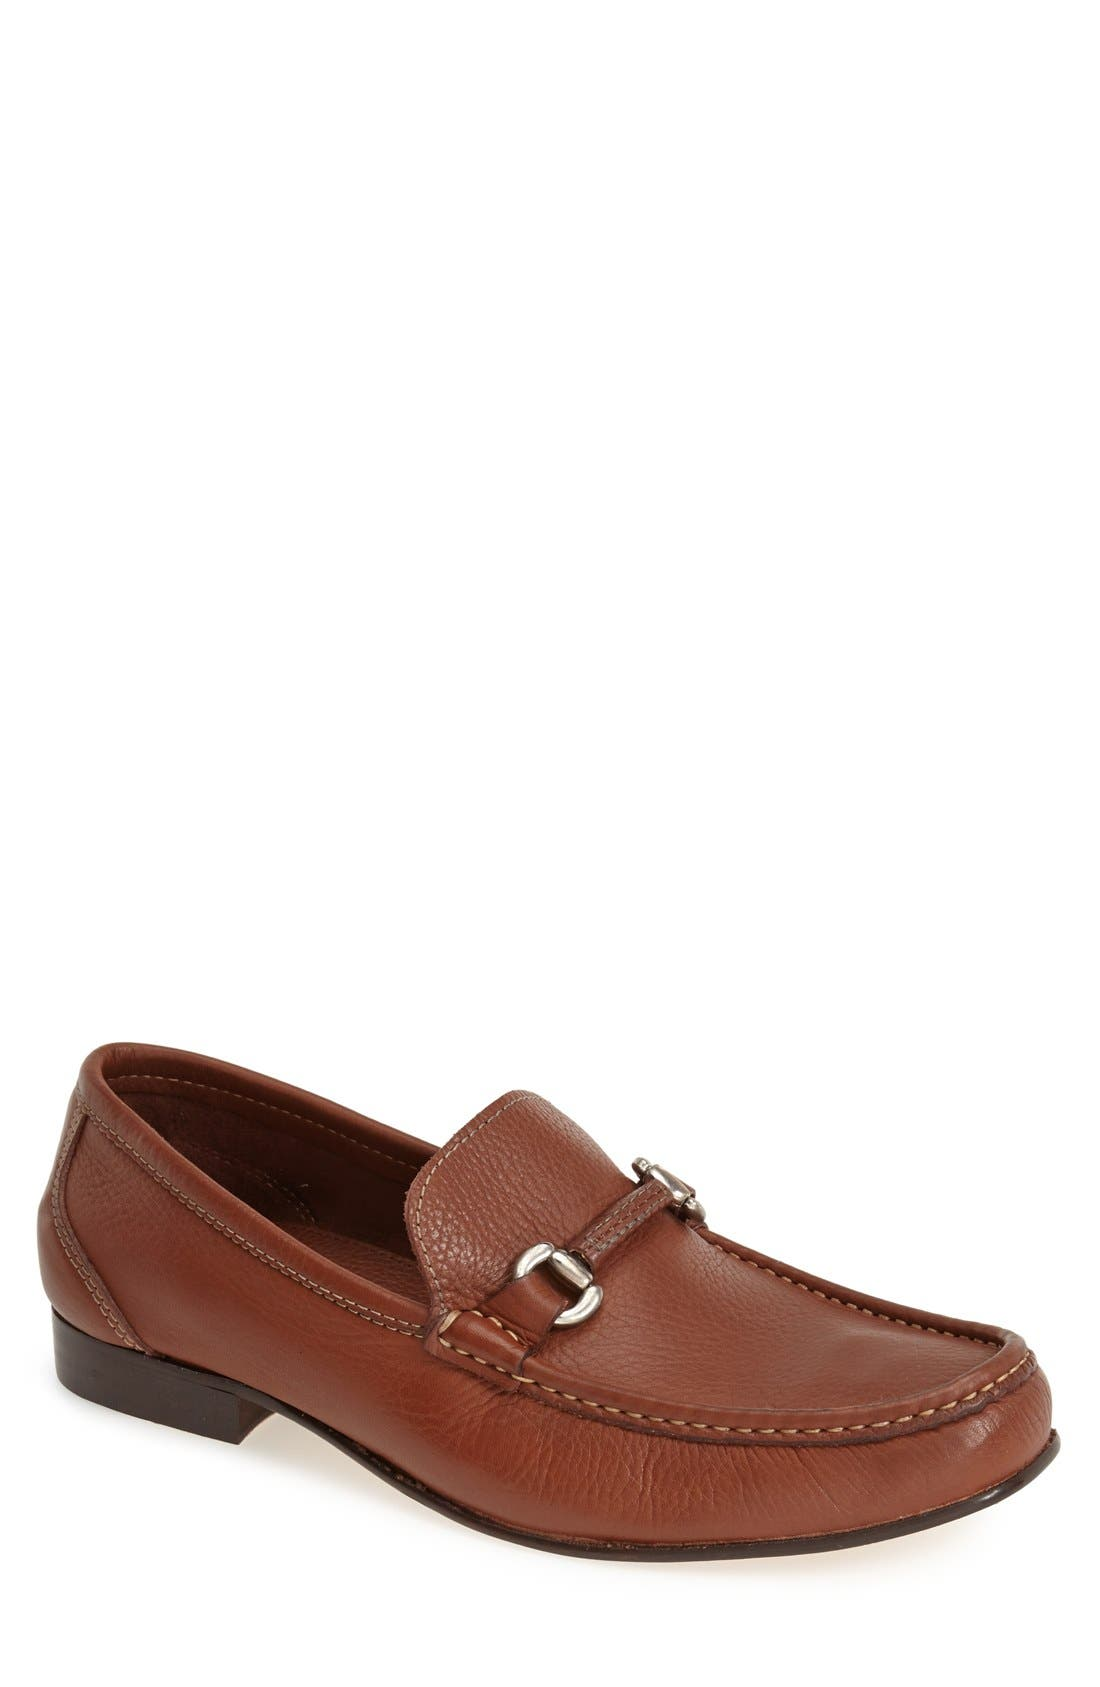 Sandro Moscoloni 'San Remo' Leather Bit Loafer (Men)